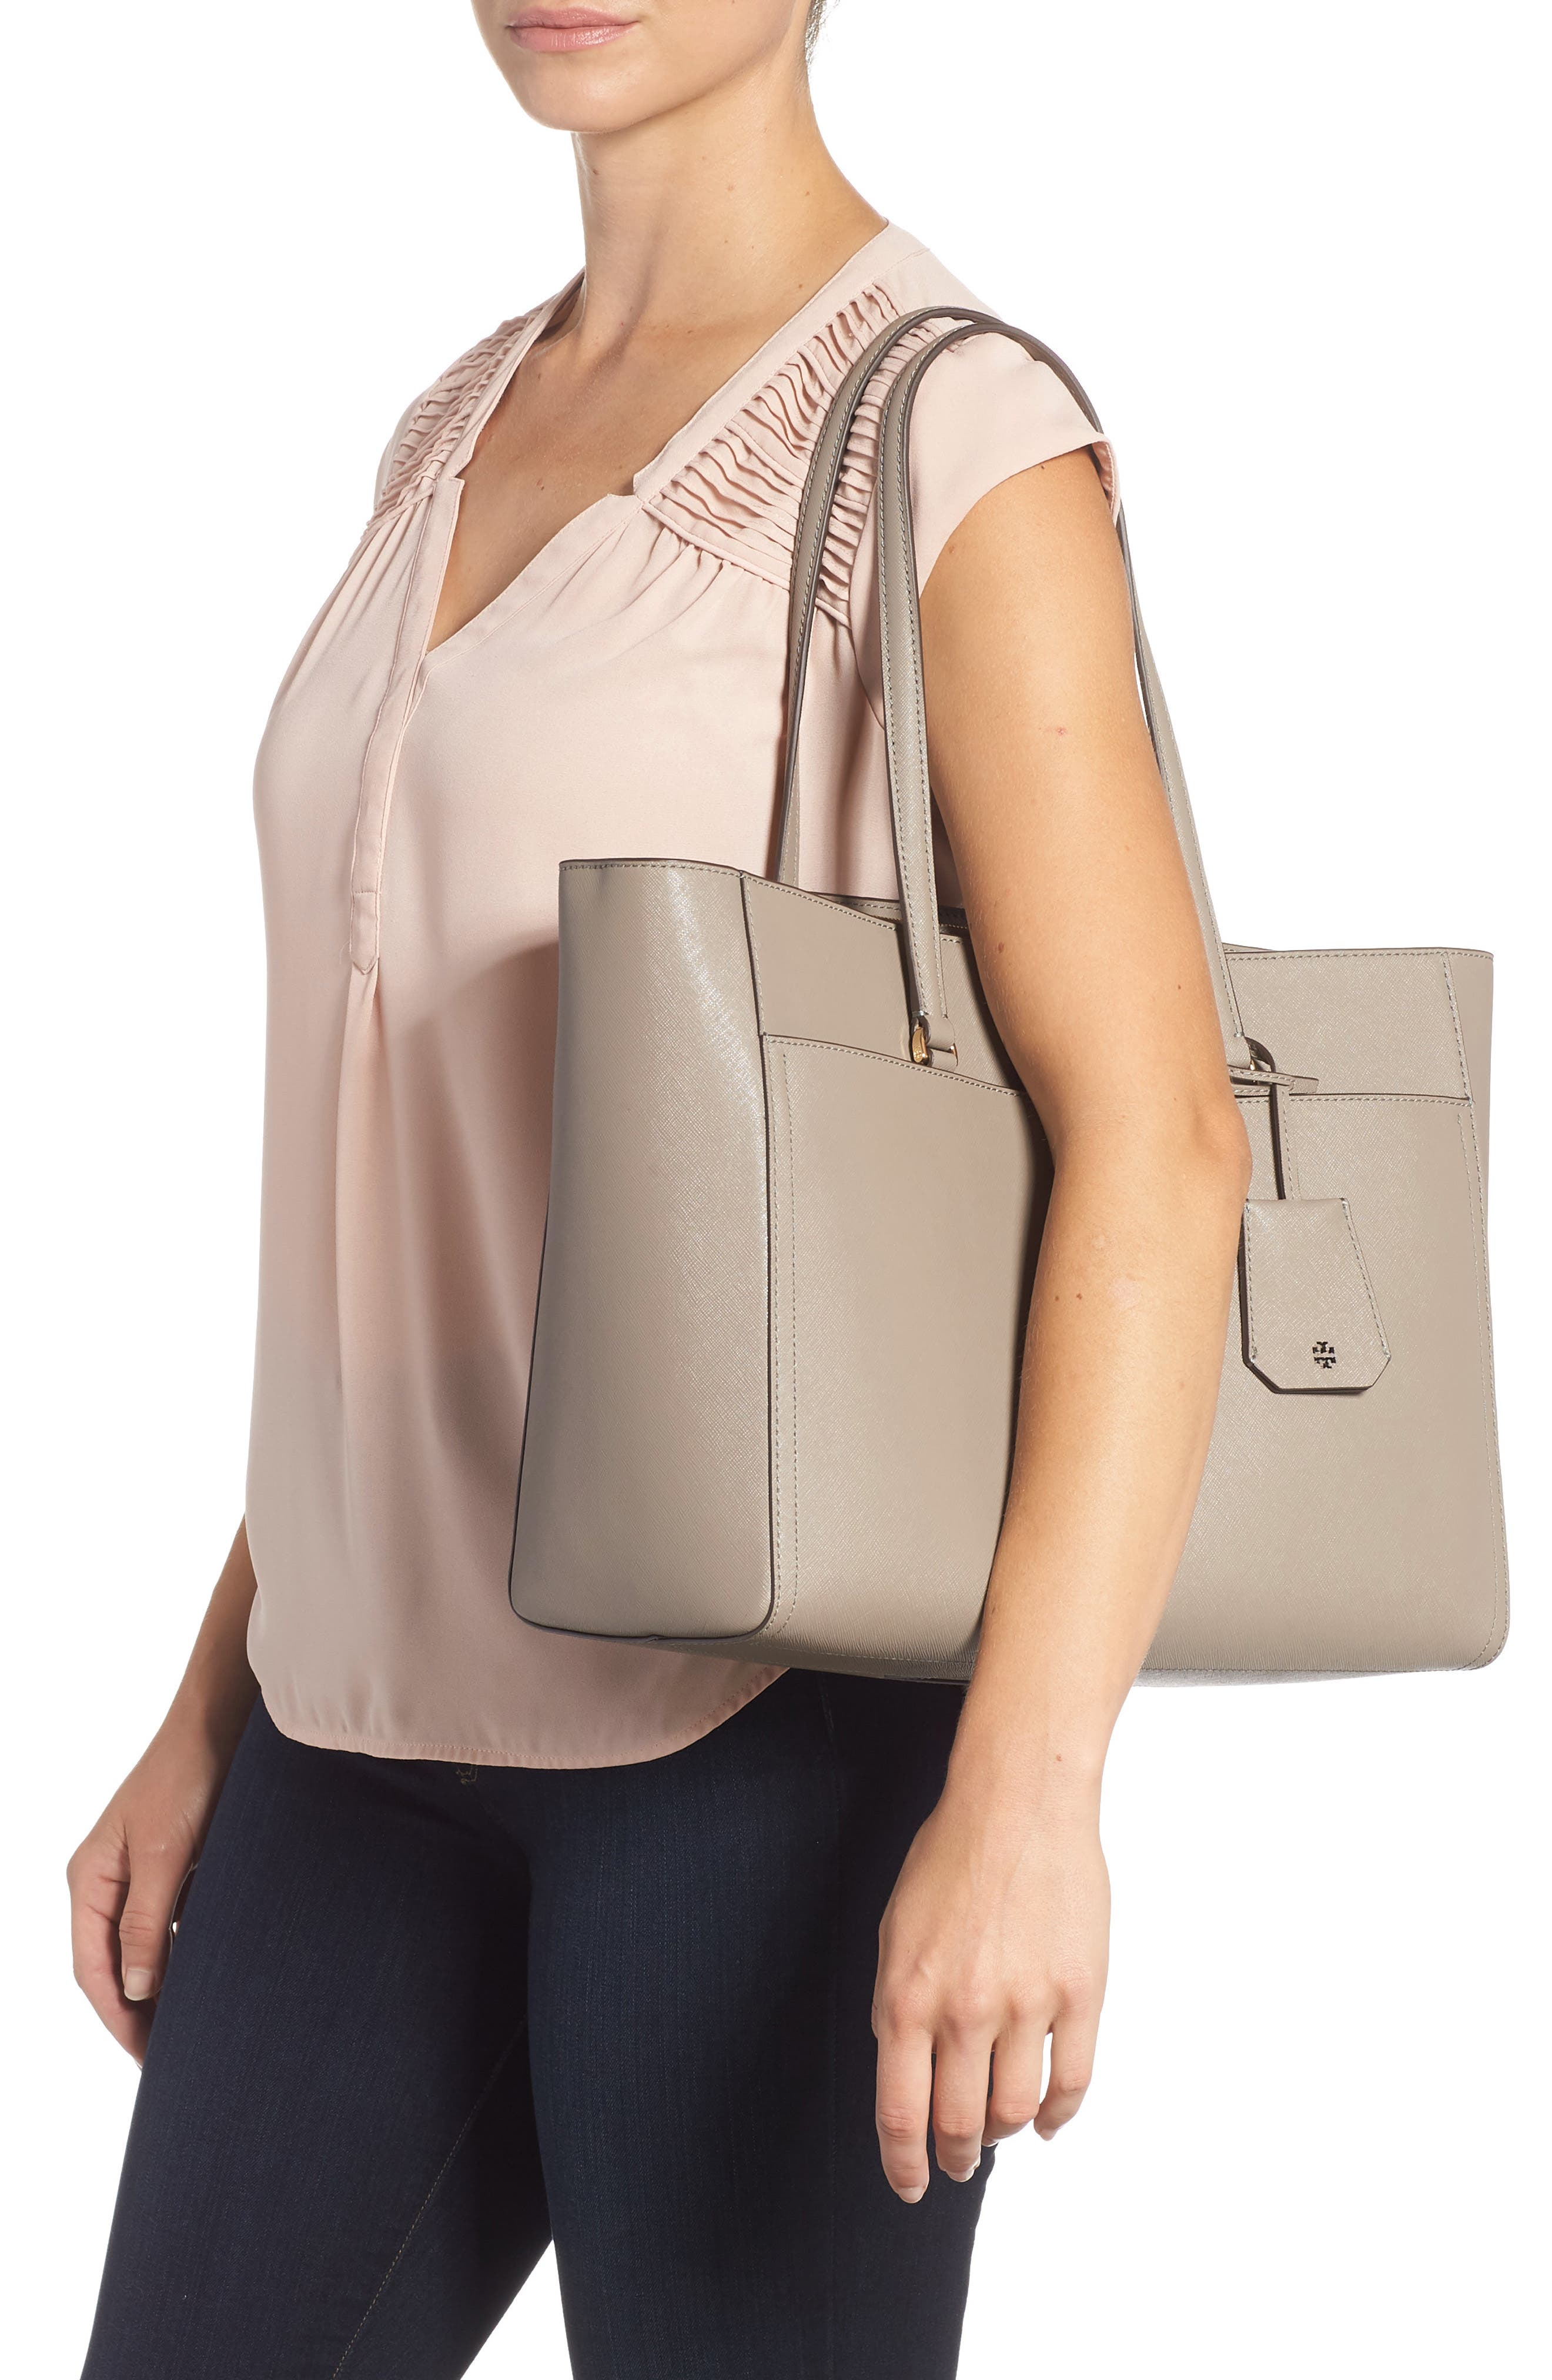 TORY BURCH, Robinson Leather Tote, Alternate thumbnail 2, color, GRAY HERON